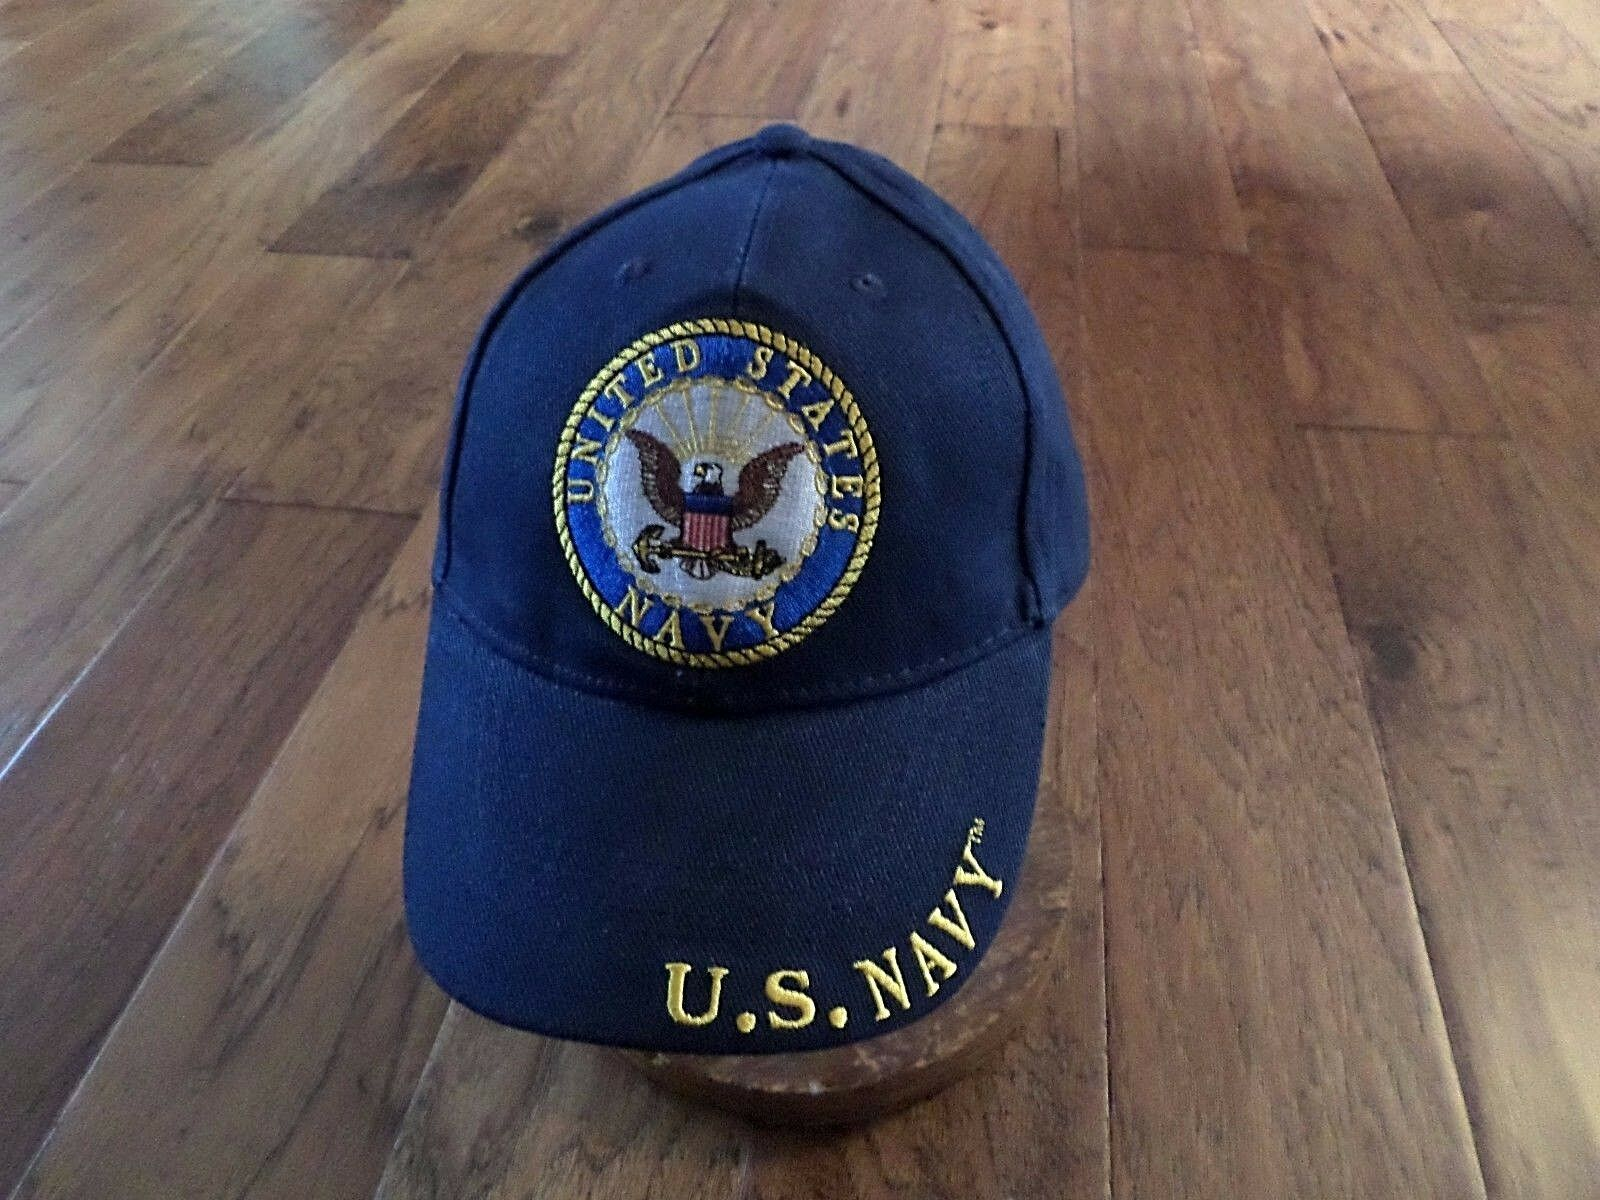 NEW U.S MILITARY OFFICIAL NAVY EMBROIDERED BLUE HAT BASEBALL CAP OFFICIAL MILITARY LICENSED HATS 7ed1d6